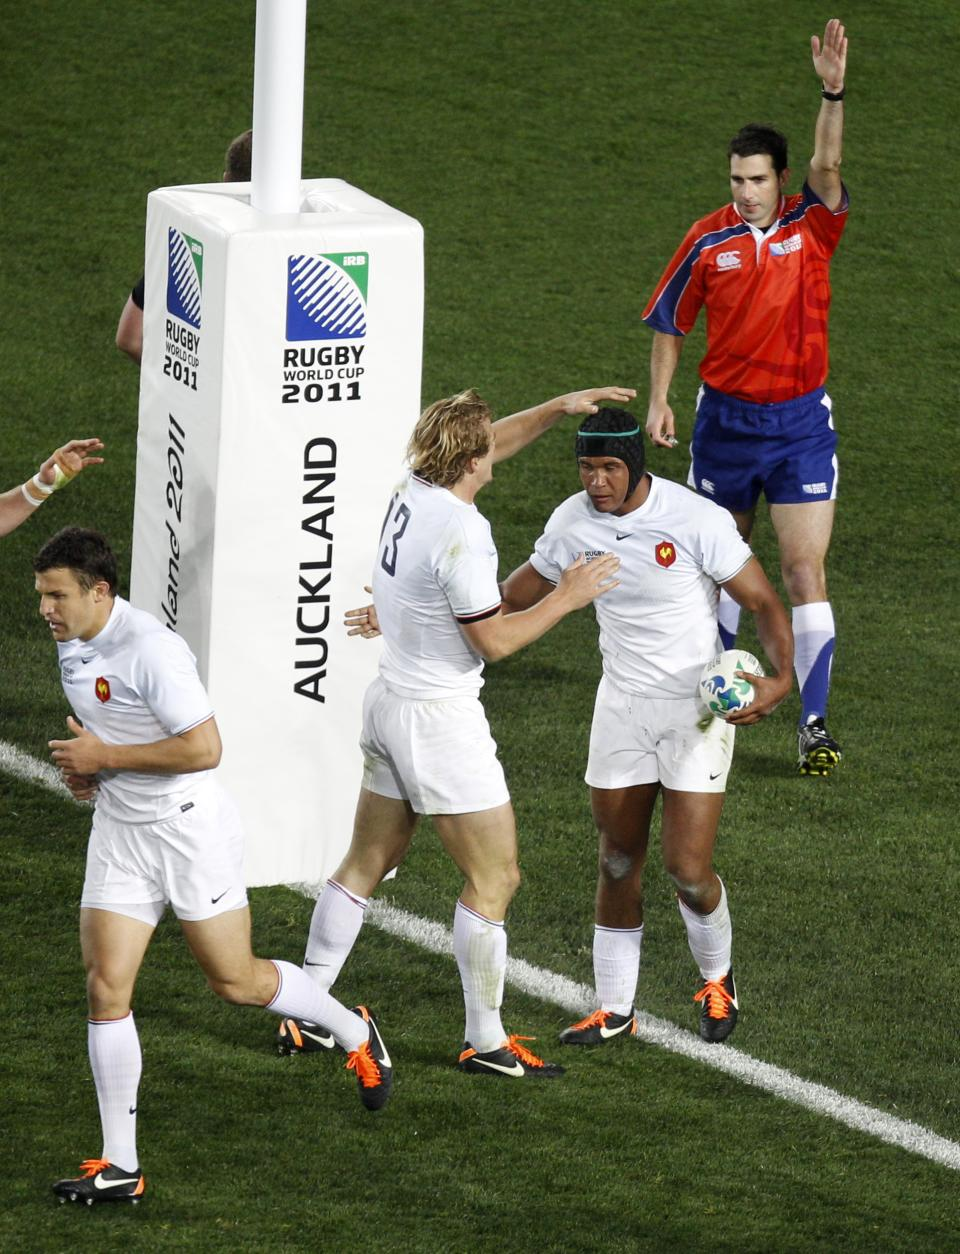 France's Thierry Dusautoir, second from right,  is congratulated by teammate Aurelien Rougerie after scoring a try during their Rugby World Cup final against the New Zealand All Blacks at Eden Park in Auckland, New Zealand, Sunday, Oct. 23, 2011. (AP Photo/Dita Alangkara)